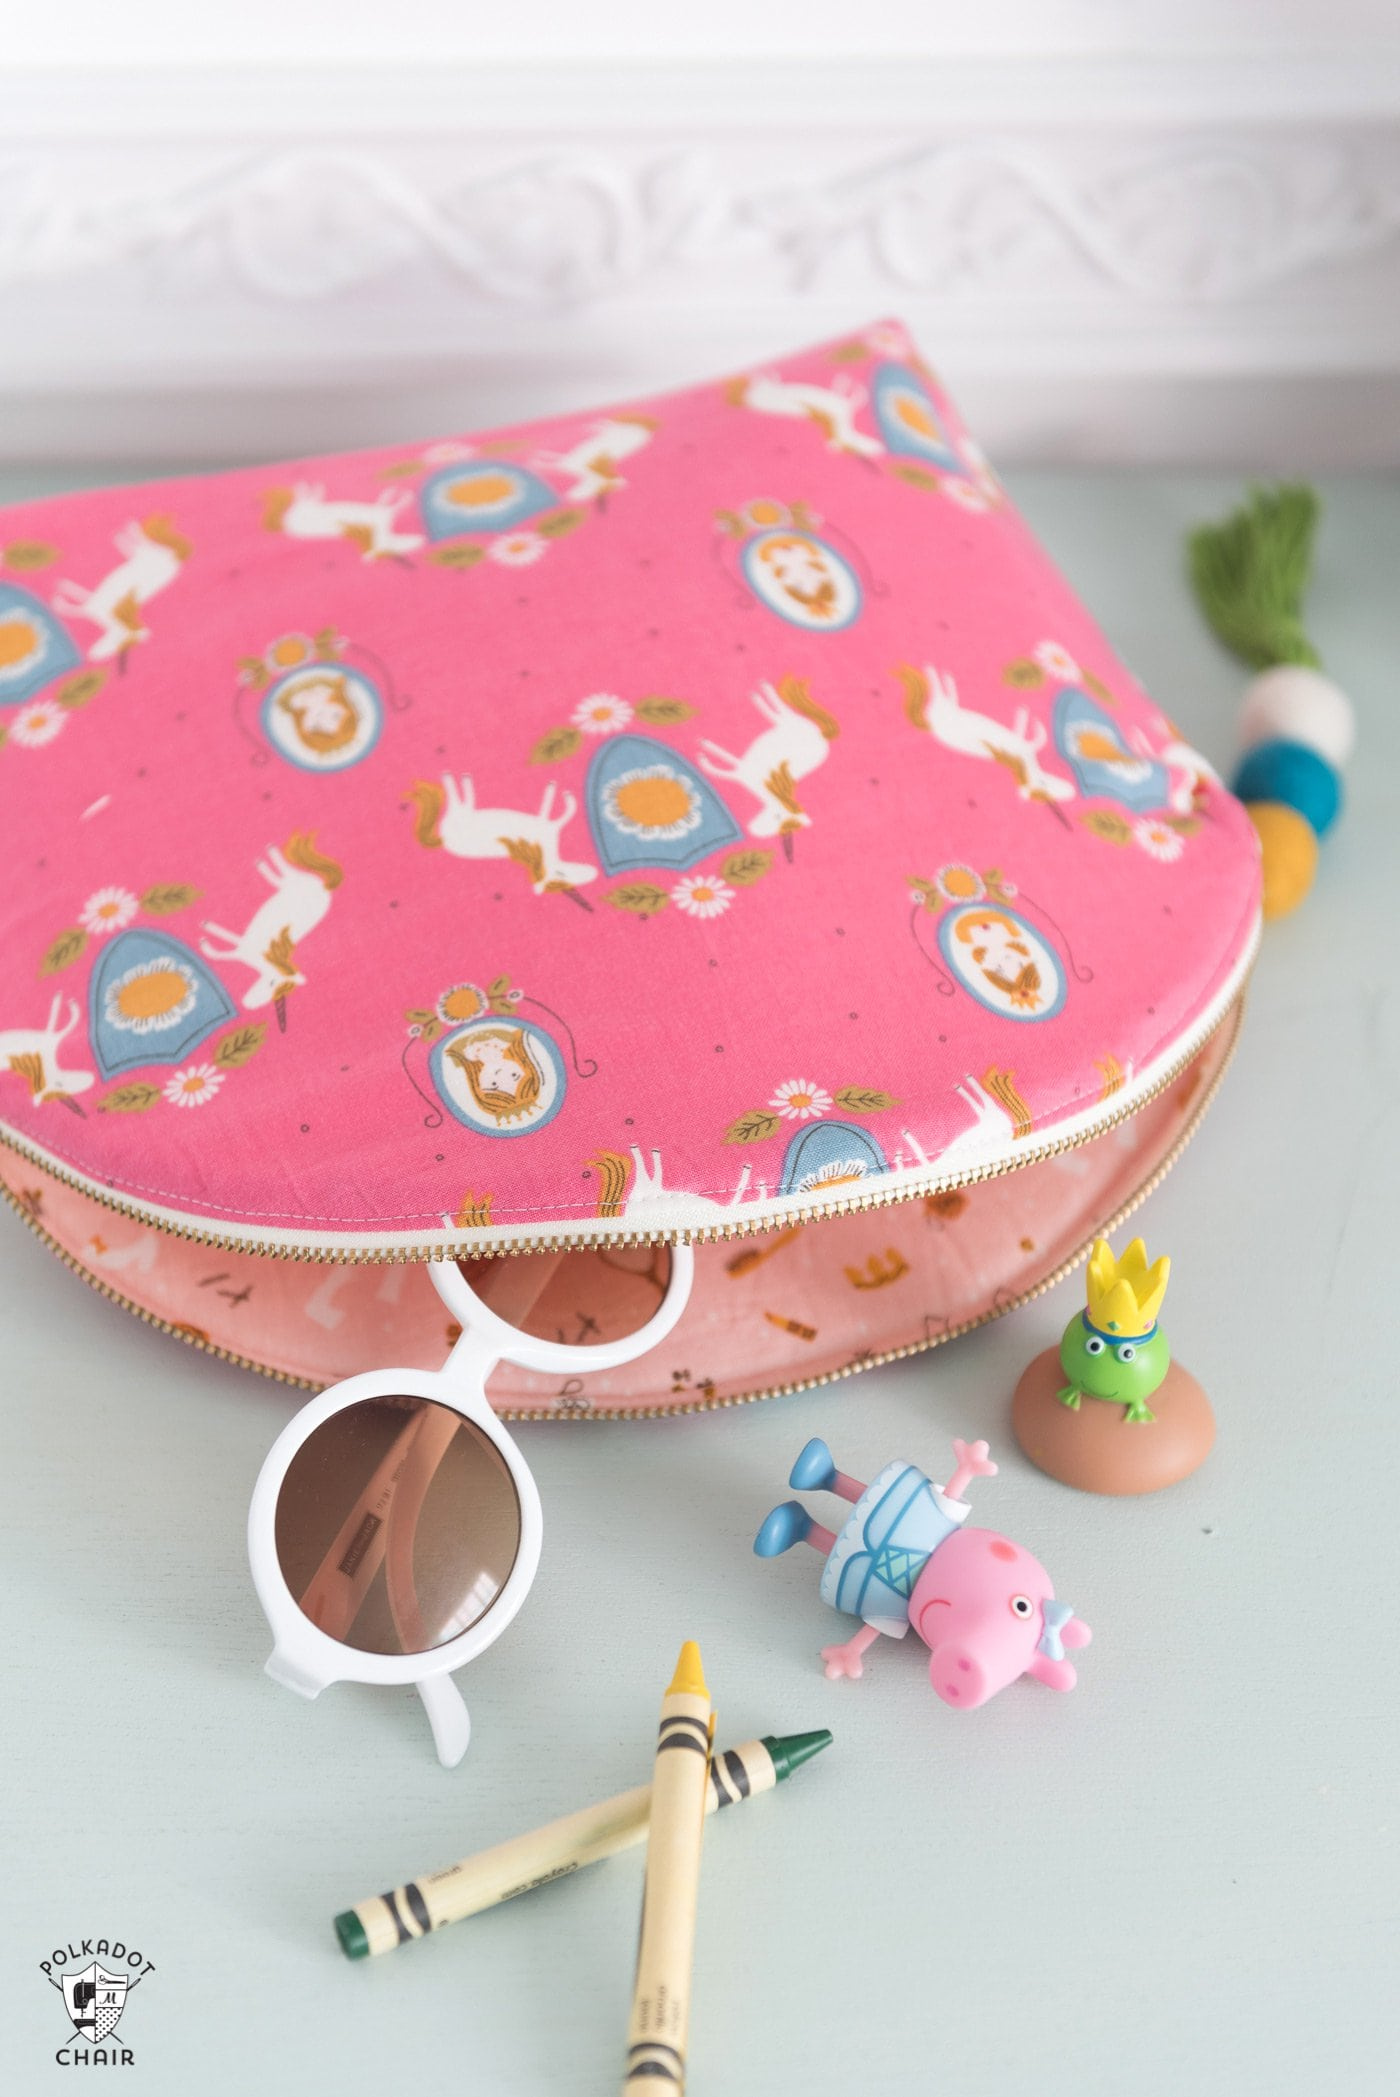 curved bag with toys